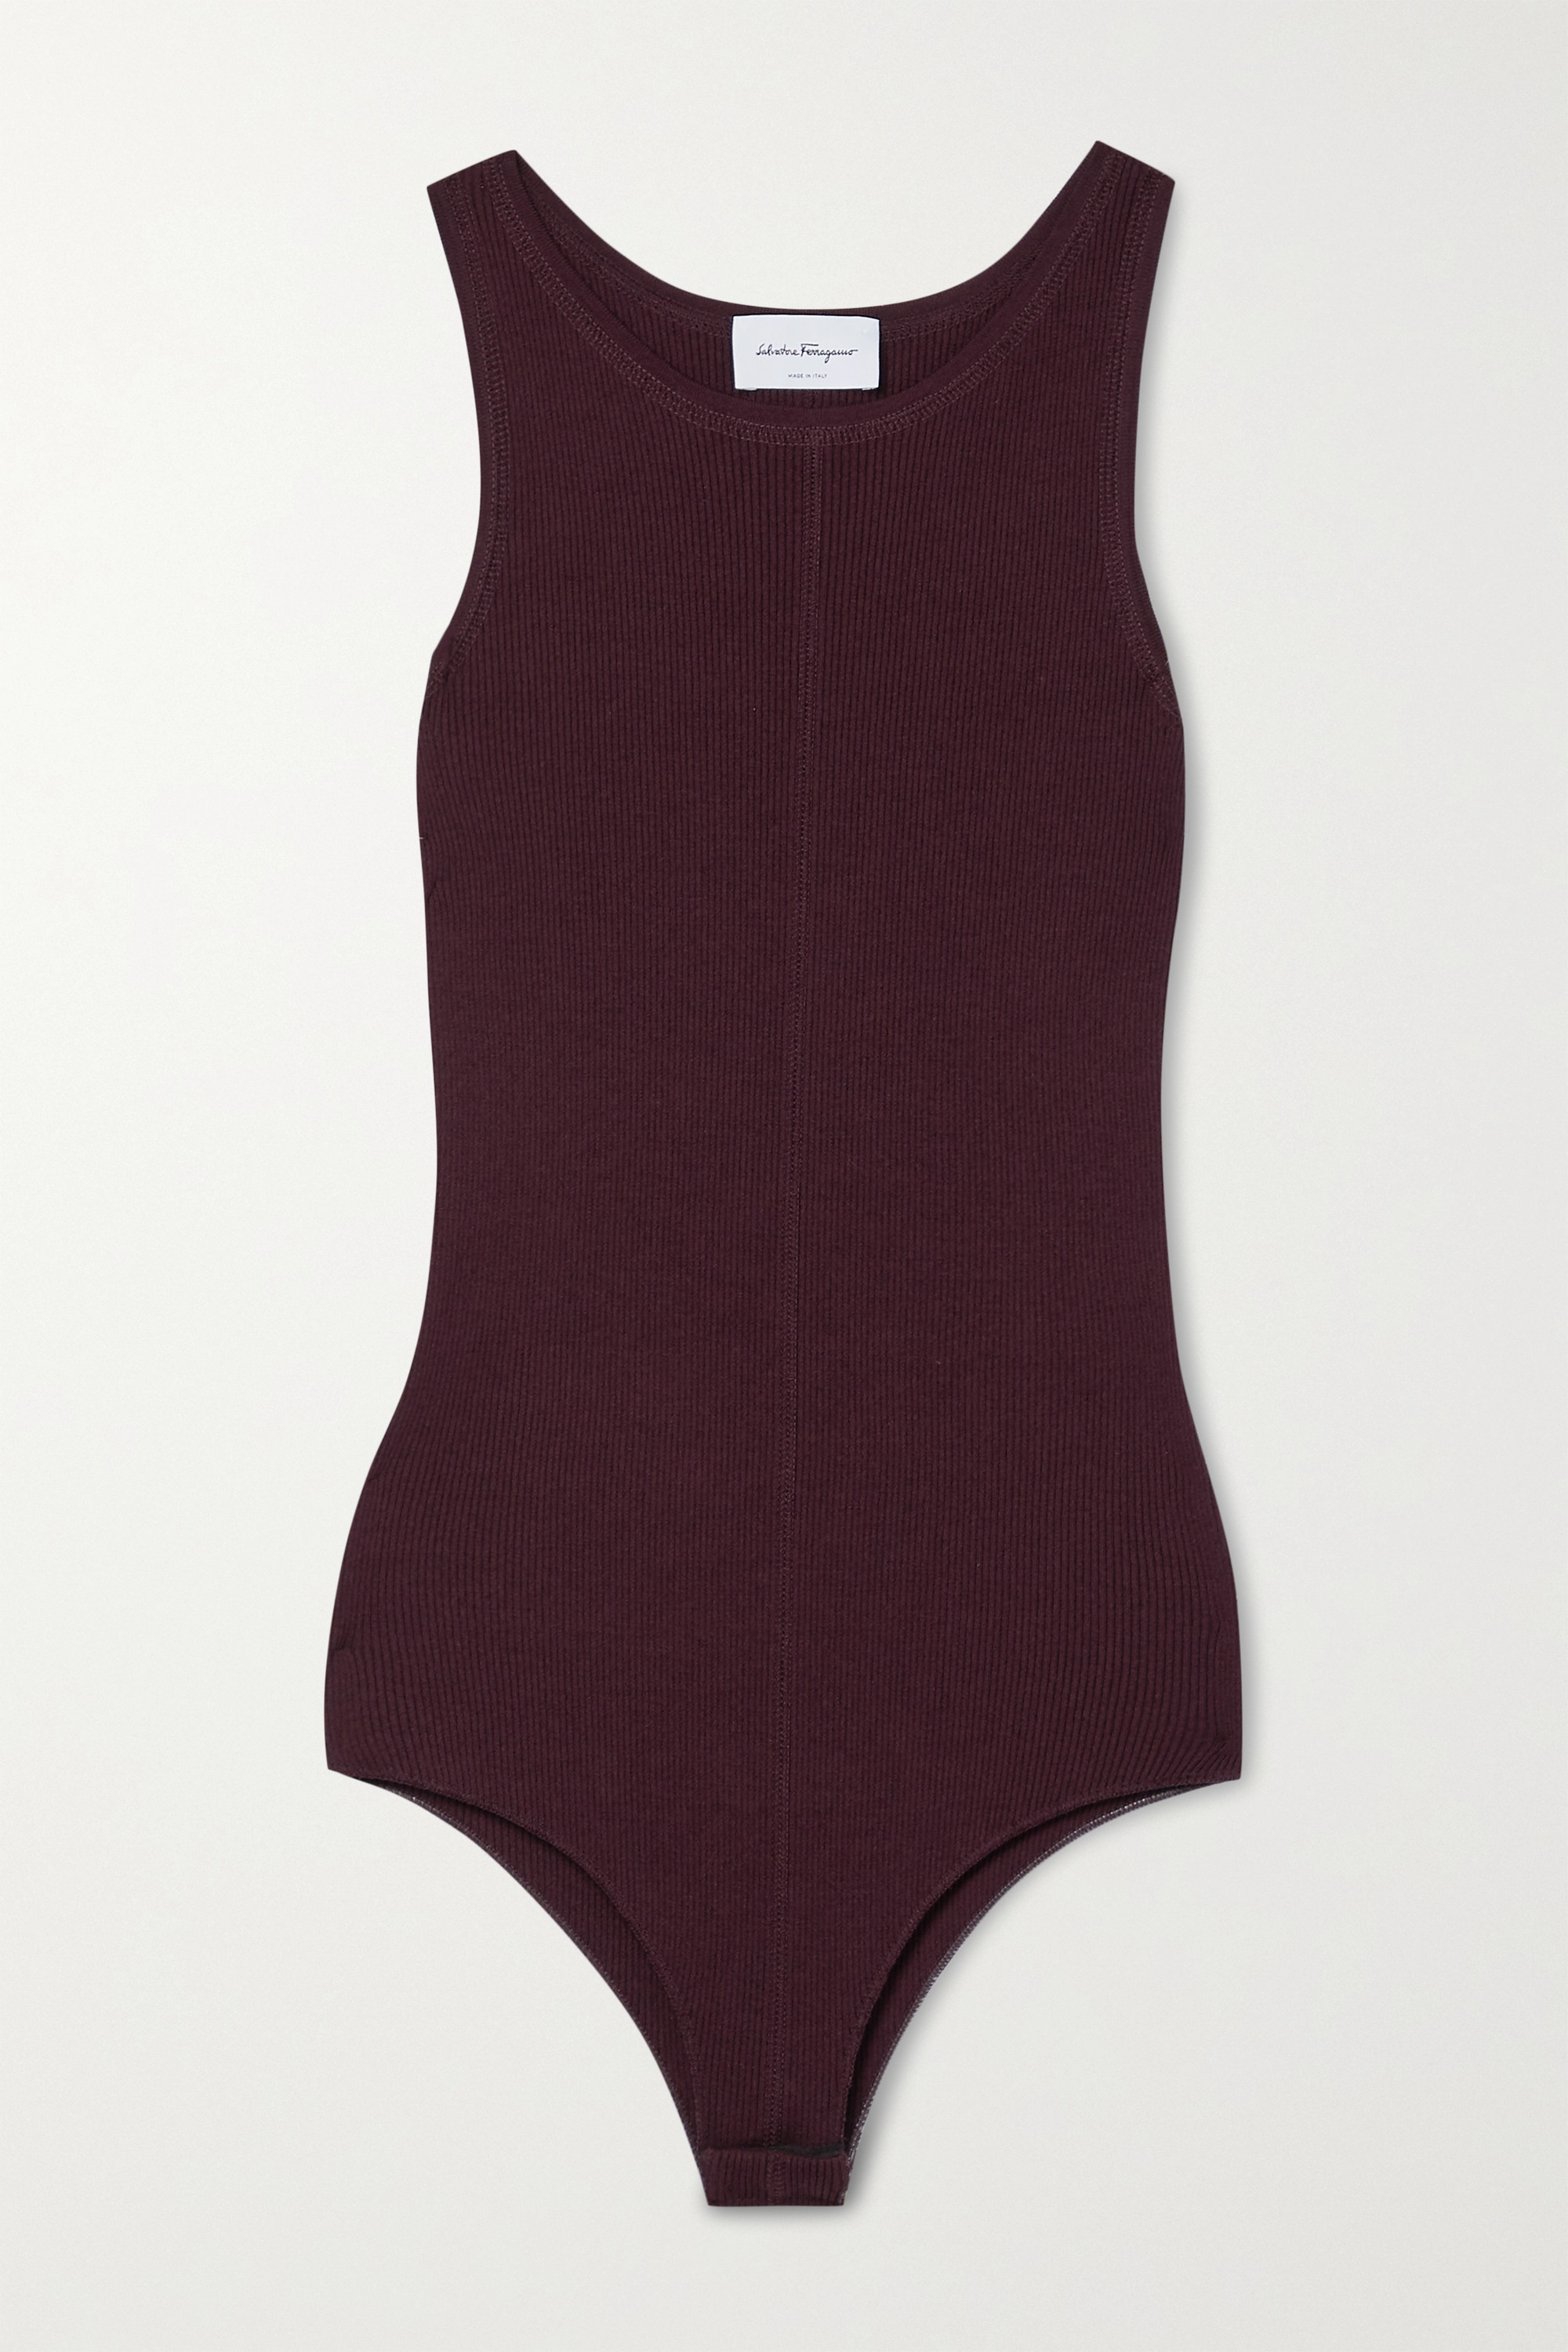 SALVATORE FERRAGAMO Ribbed silk-blend bodysuit